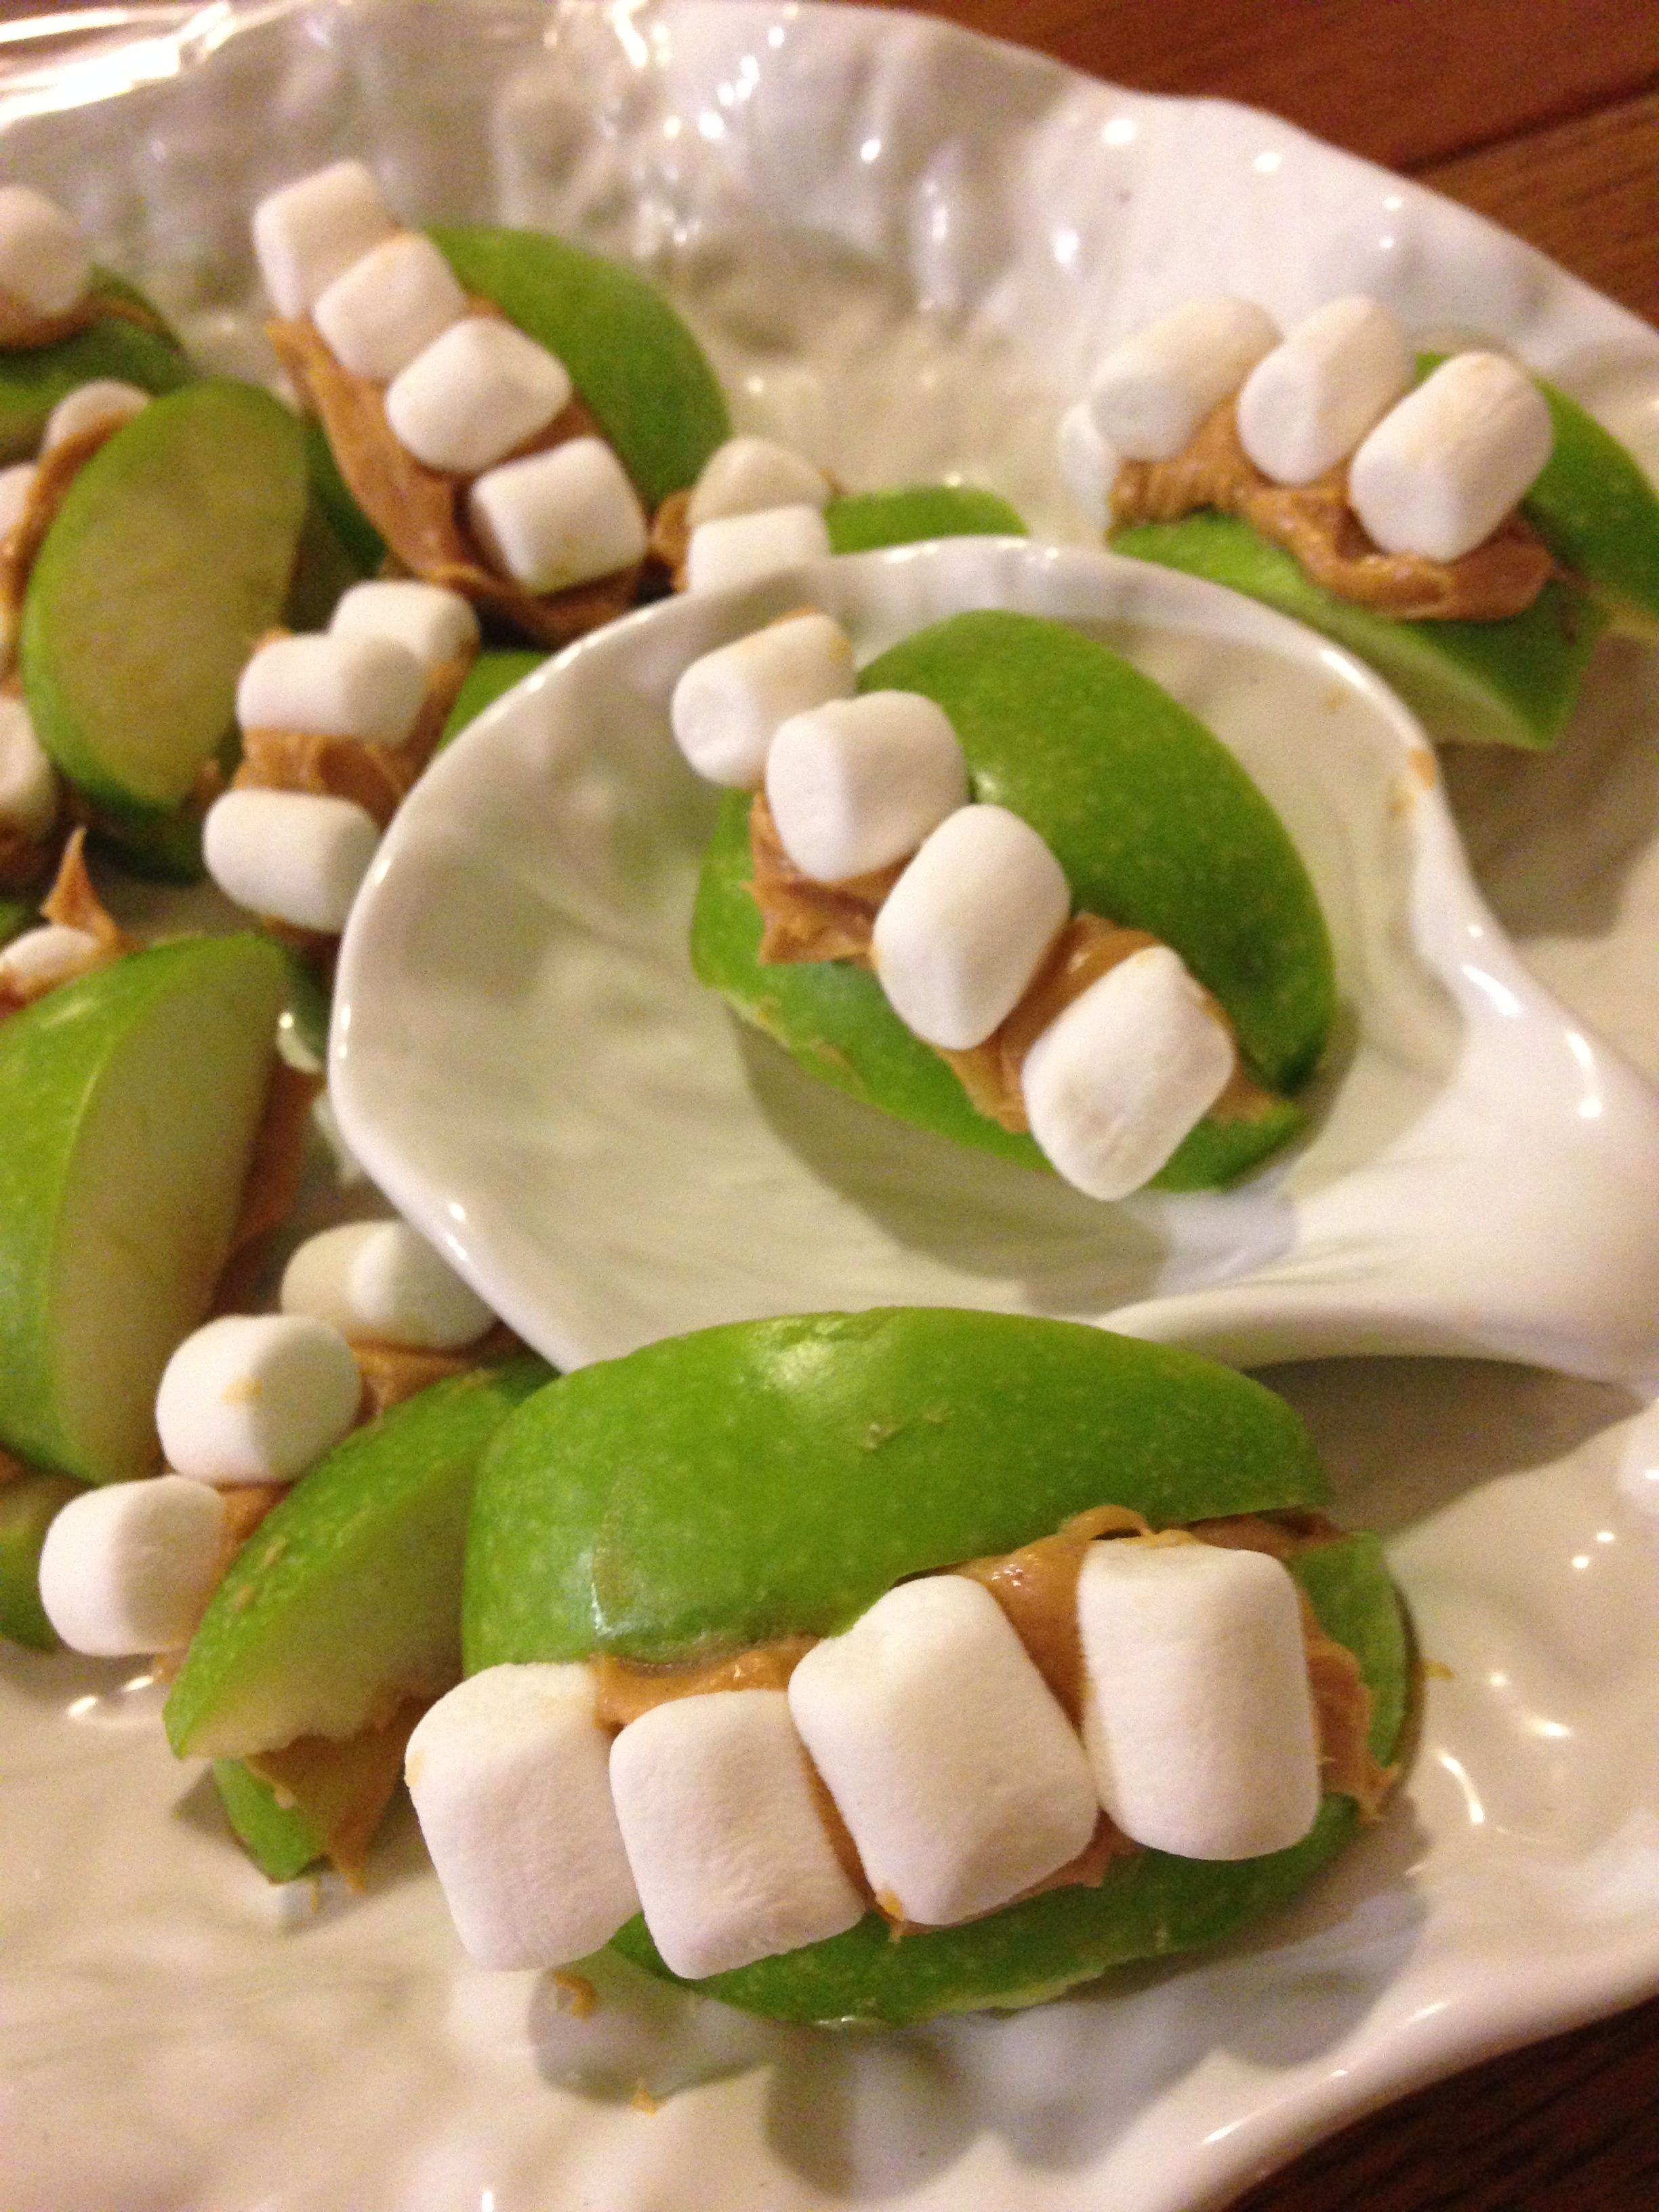 I made these monster teeth snakes at Halloween and they were a hit! Granny smith apple slices, peanut butter and mini marshmallows